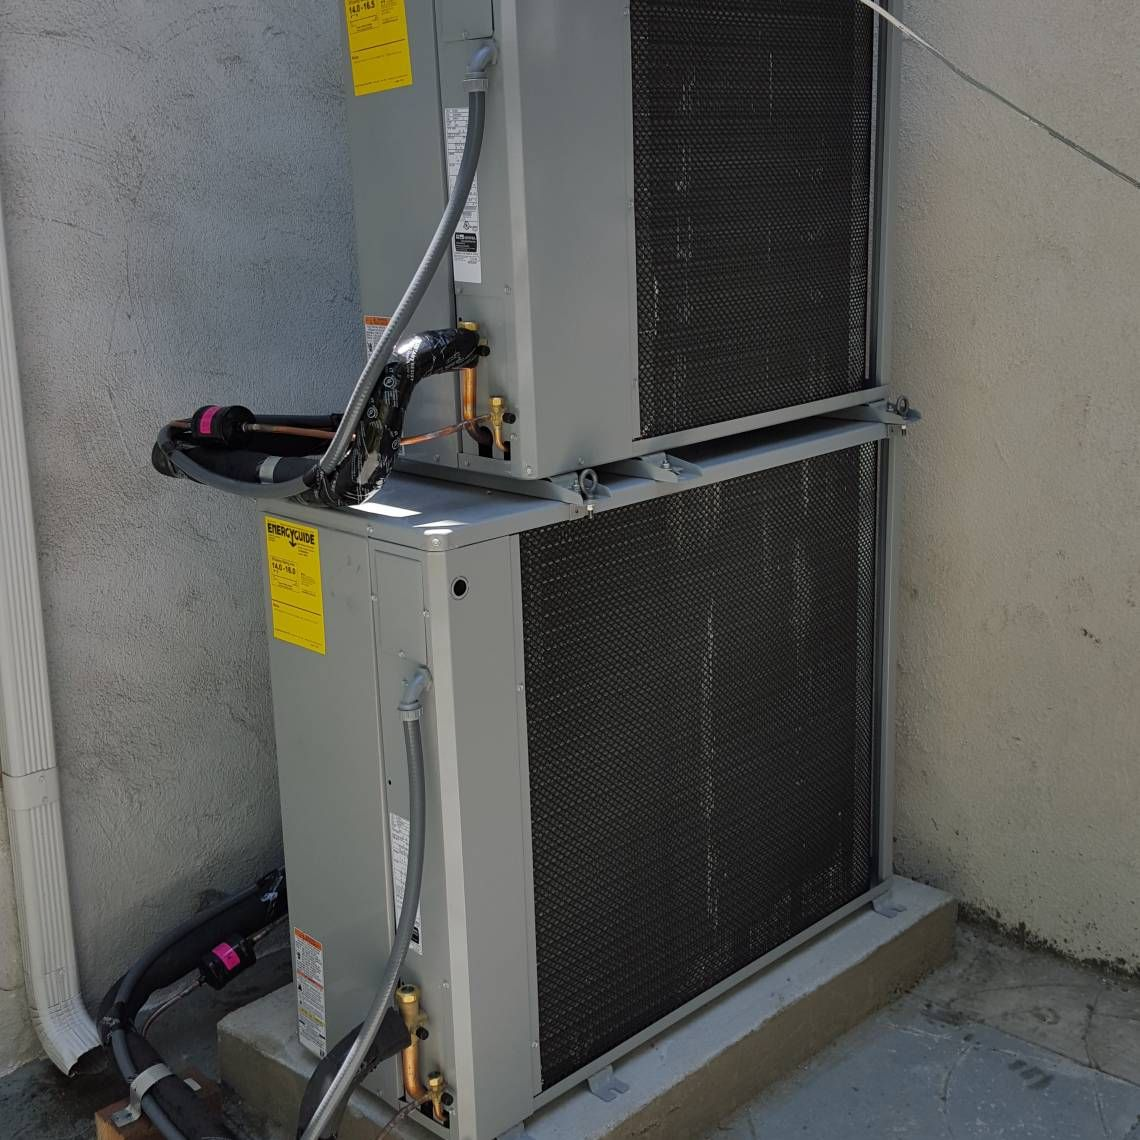 When you need best service for Gas and Heating Service in